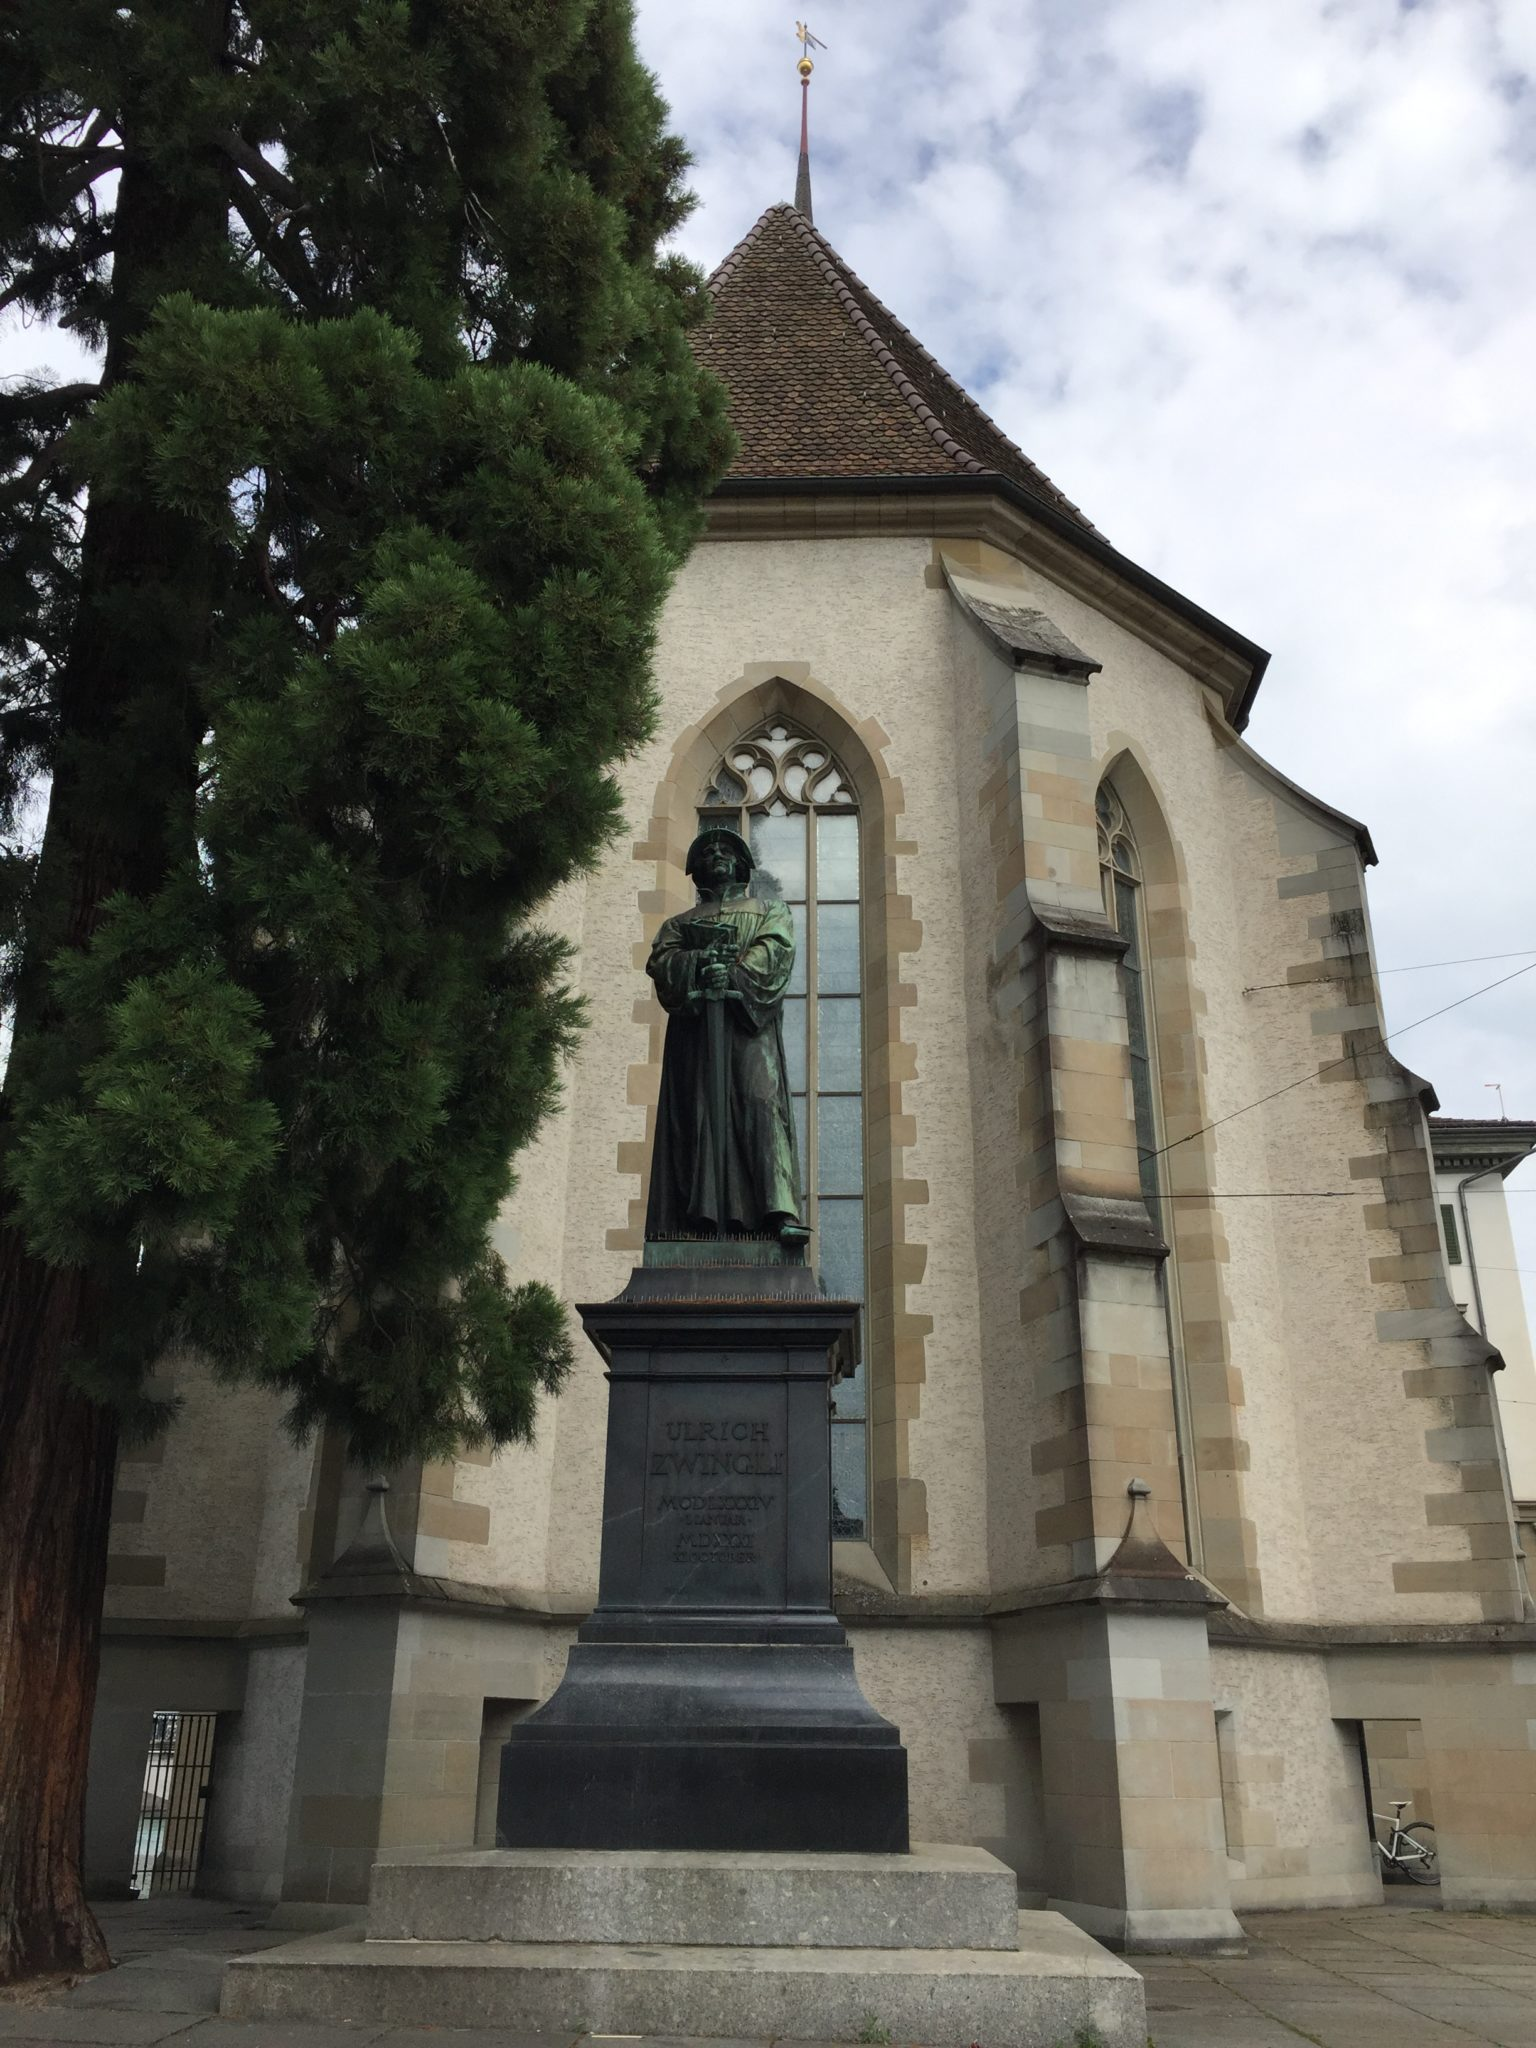 July 10 lungern zurich switzerland biblos foundation statue of swiss reformer ulrich zwingli 1484 1531 for gods sake do not put yourself at odds with the word of god for truly it will persist as surely solutioingenieria Gallery